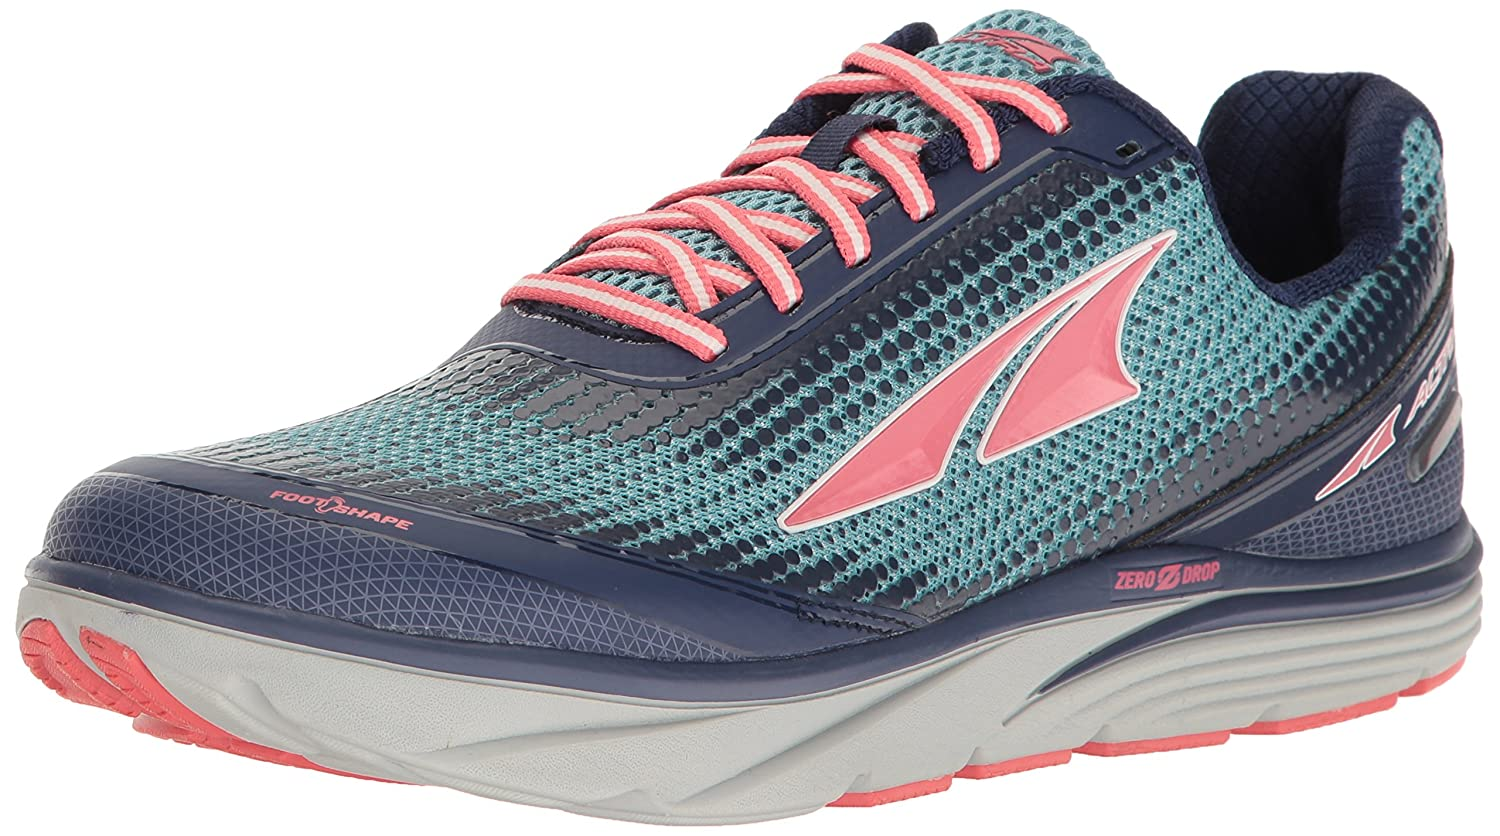 Altra Women's Torin 3.0 Running-Shoes B01MZ29XM6 7.5 B(M) US|Blue/Coral